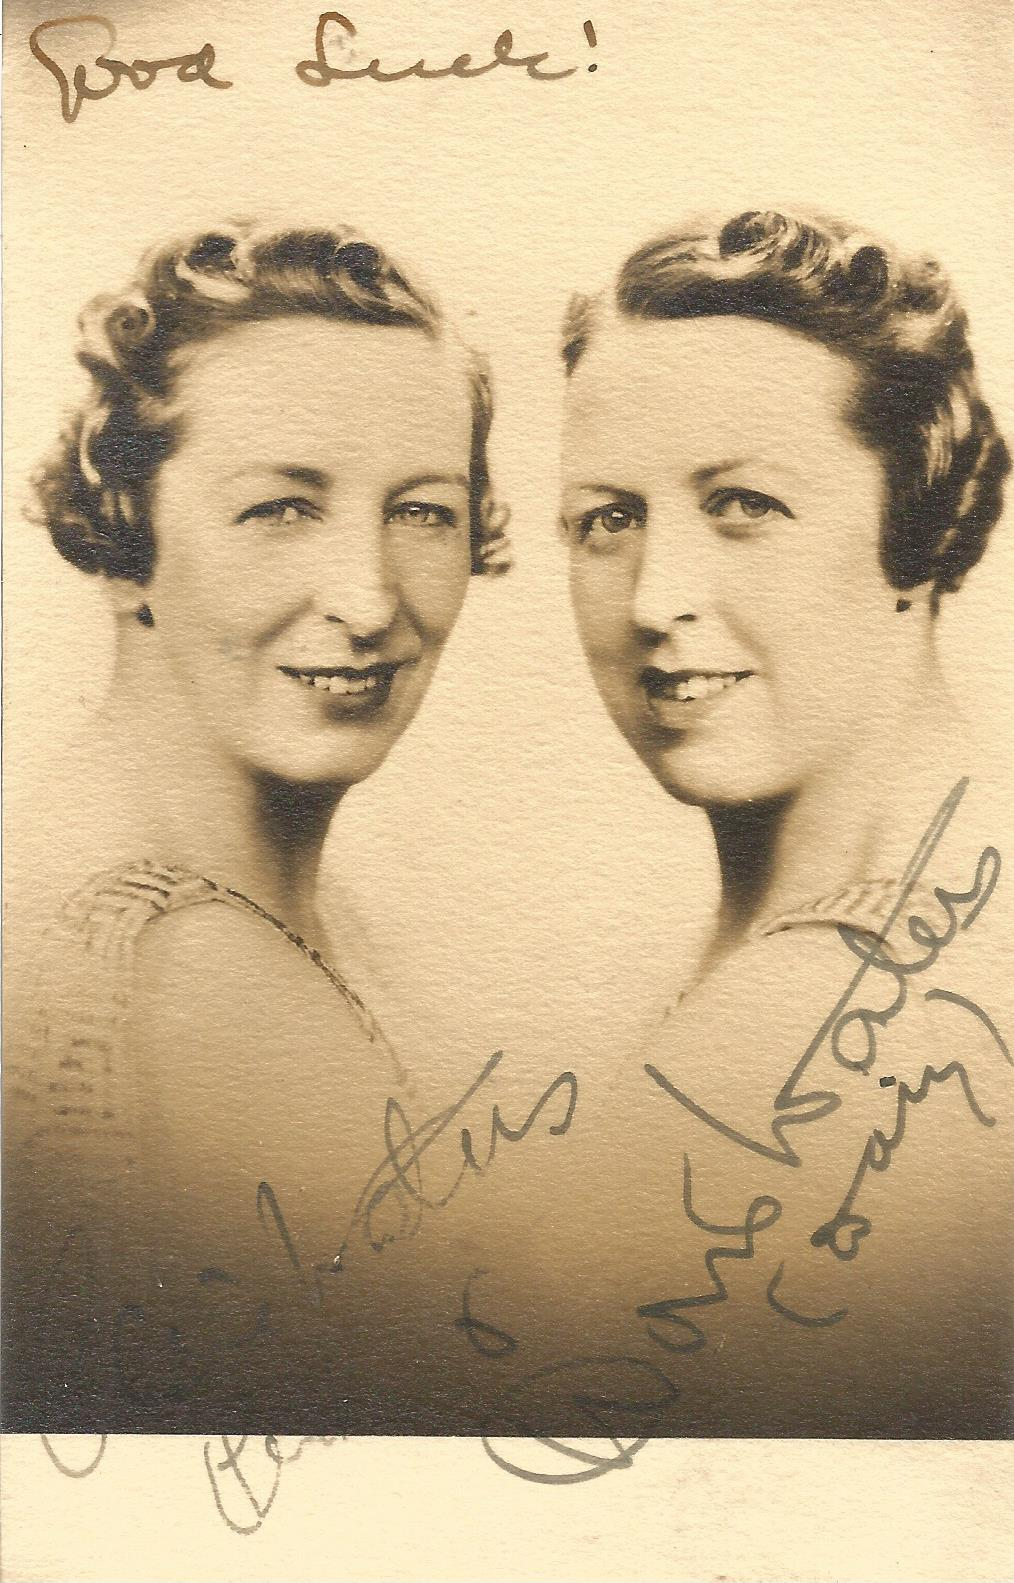 Elsie And Doris Waters Music Hall Entertainers Signed Vintage Photo. Good condition. All